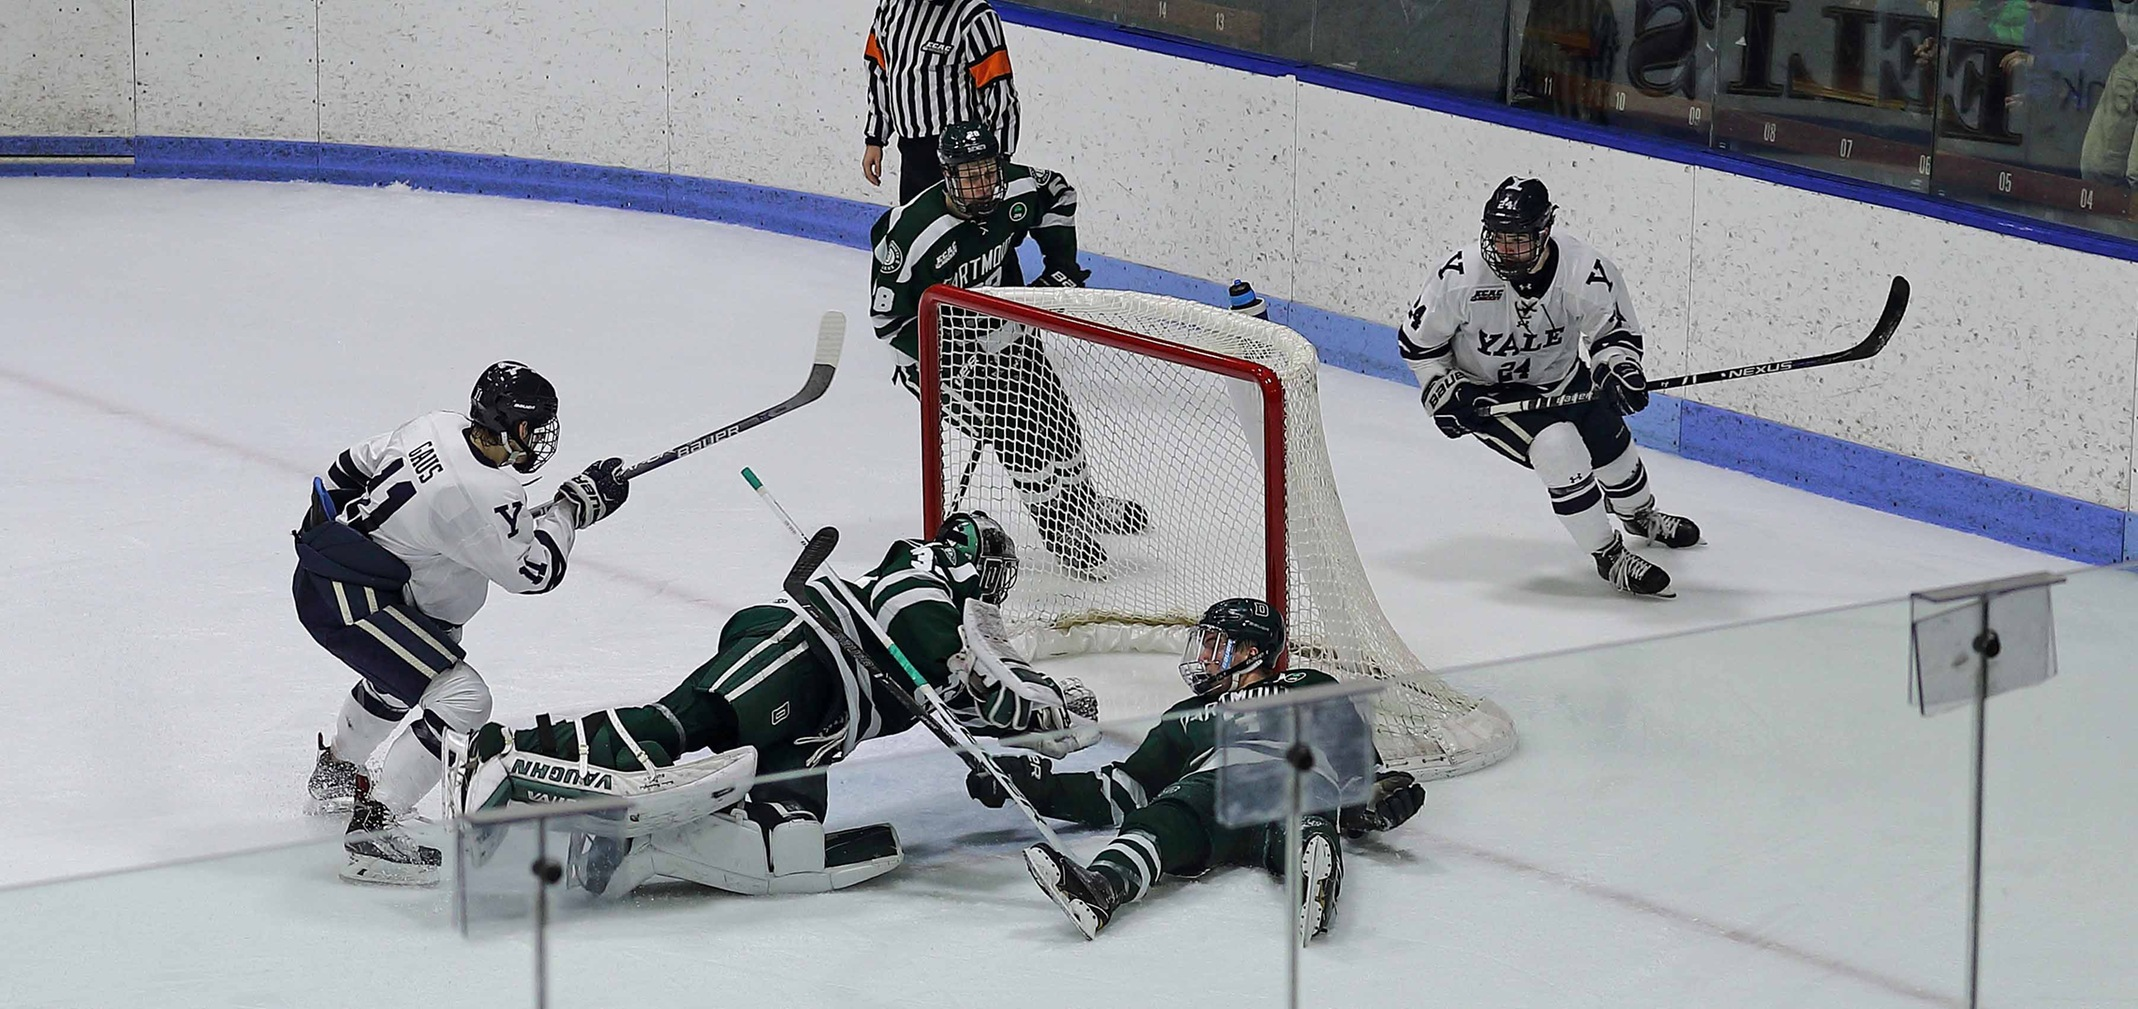 Gaus scores in OT to Give Yale 3-2 Win (Jack Warhola image)